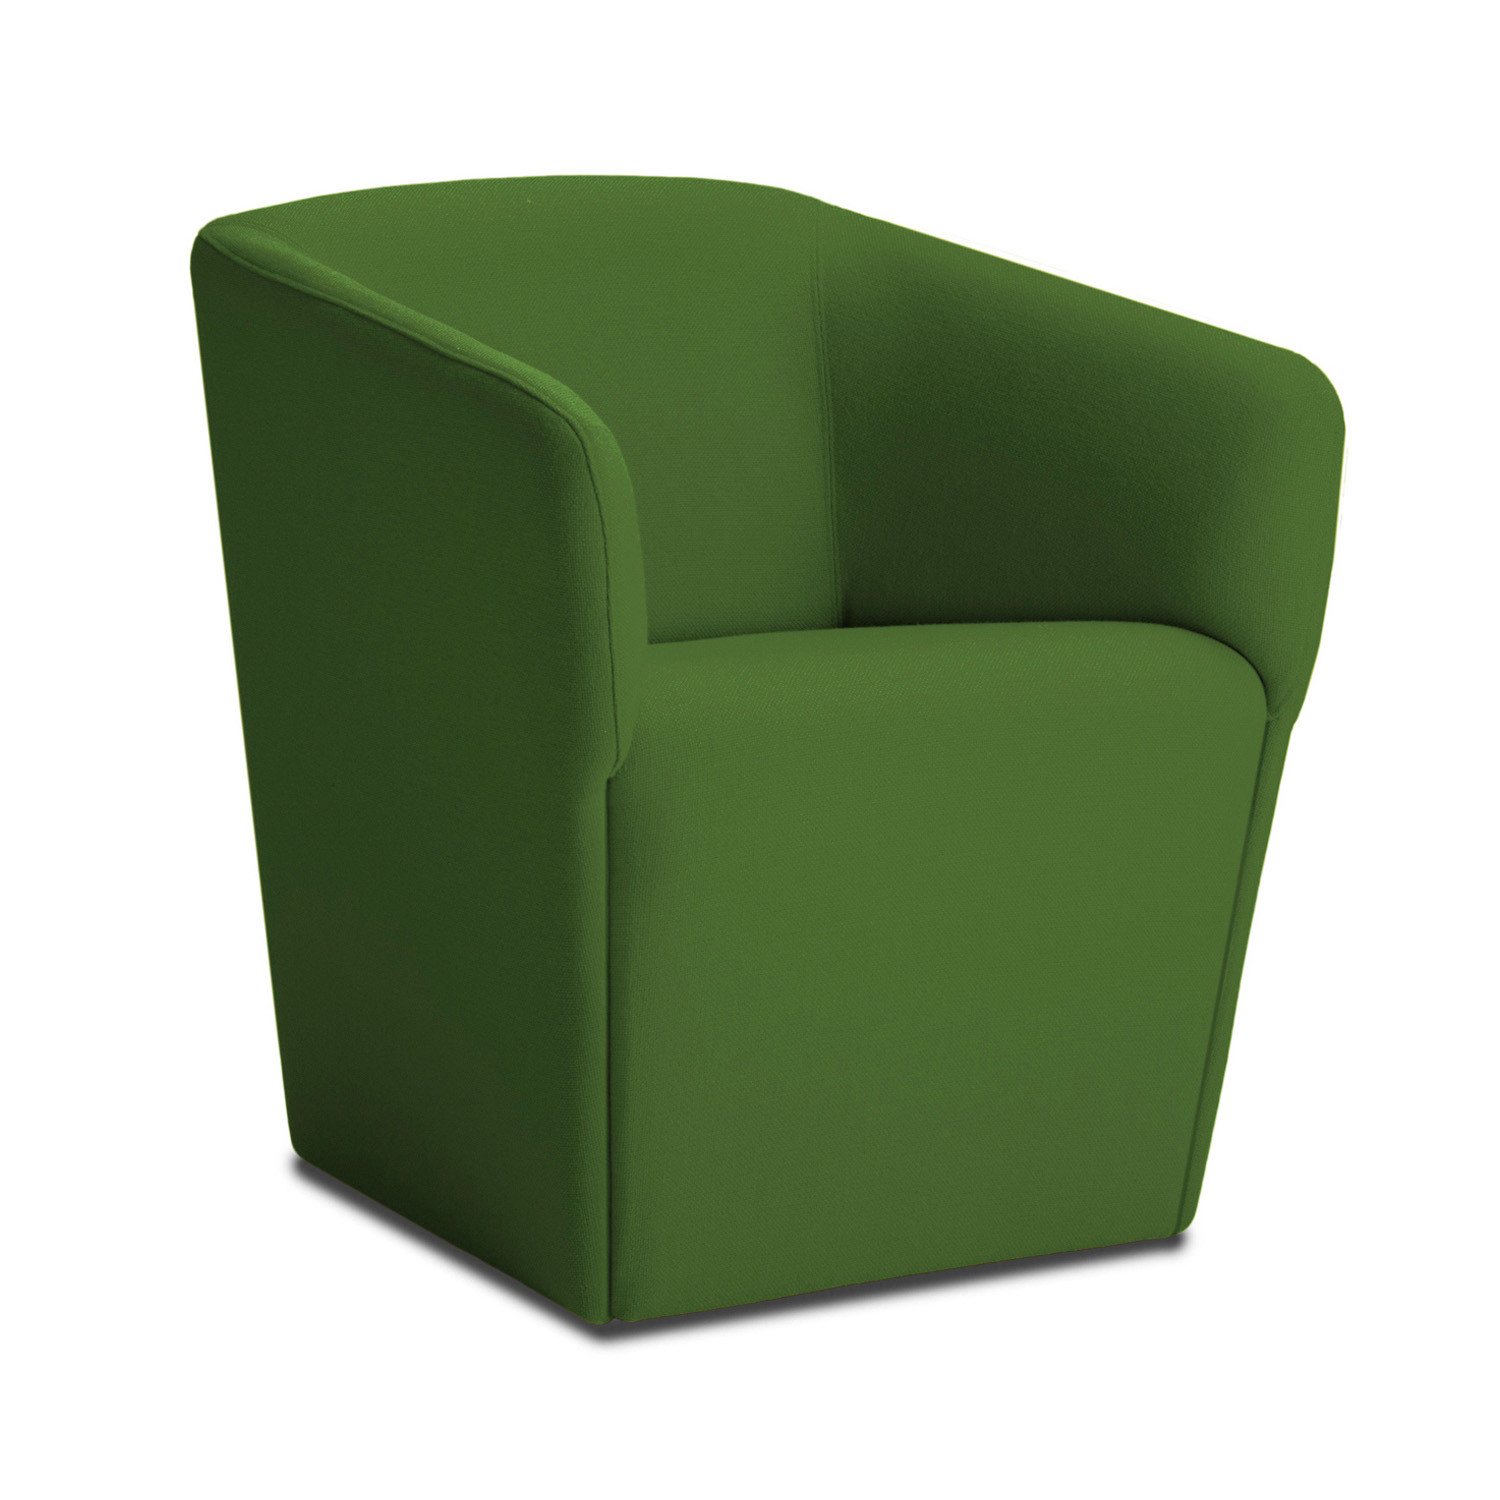 Tonic Club Compact Armchair